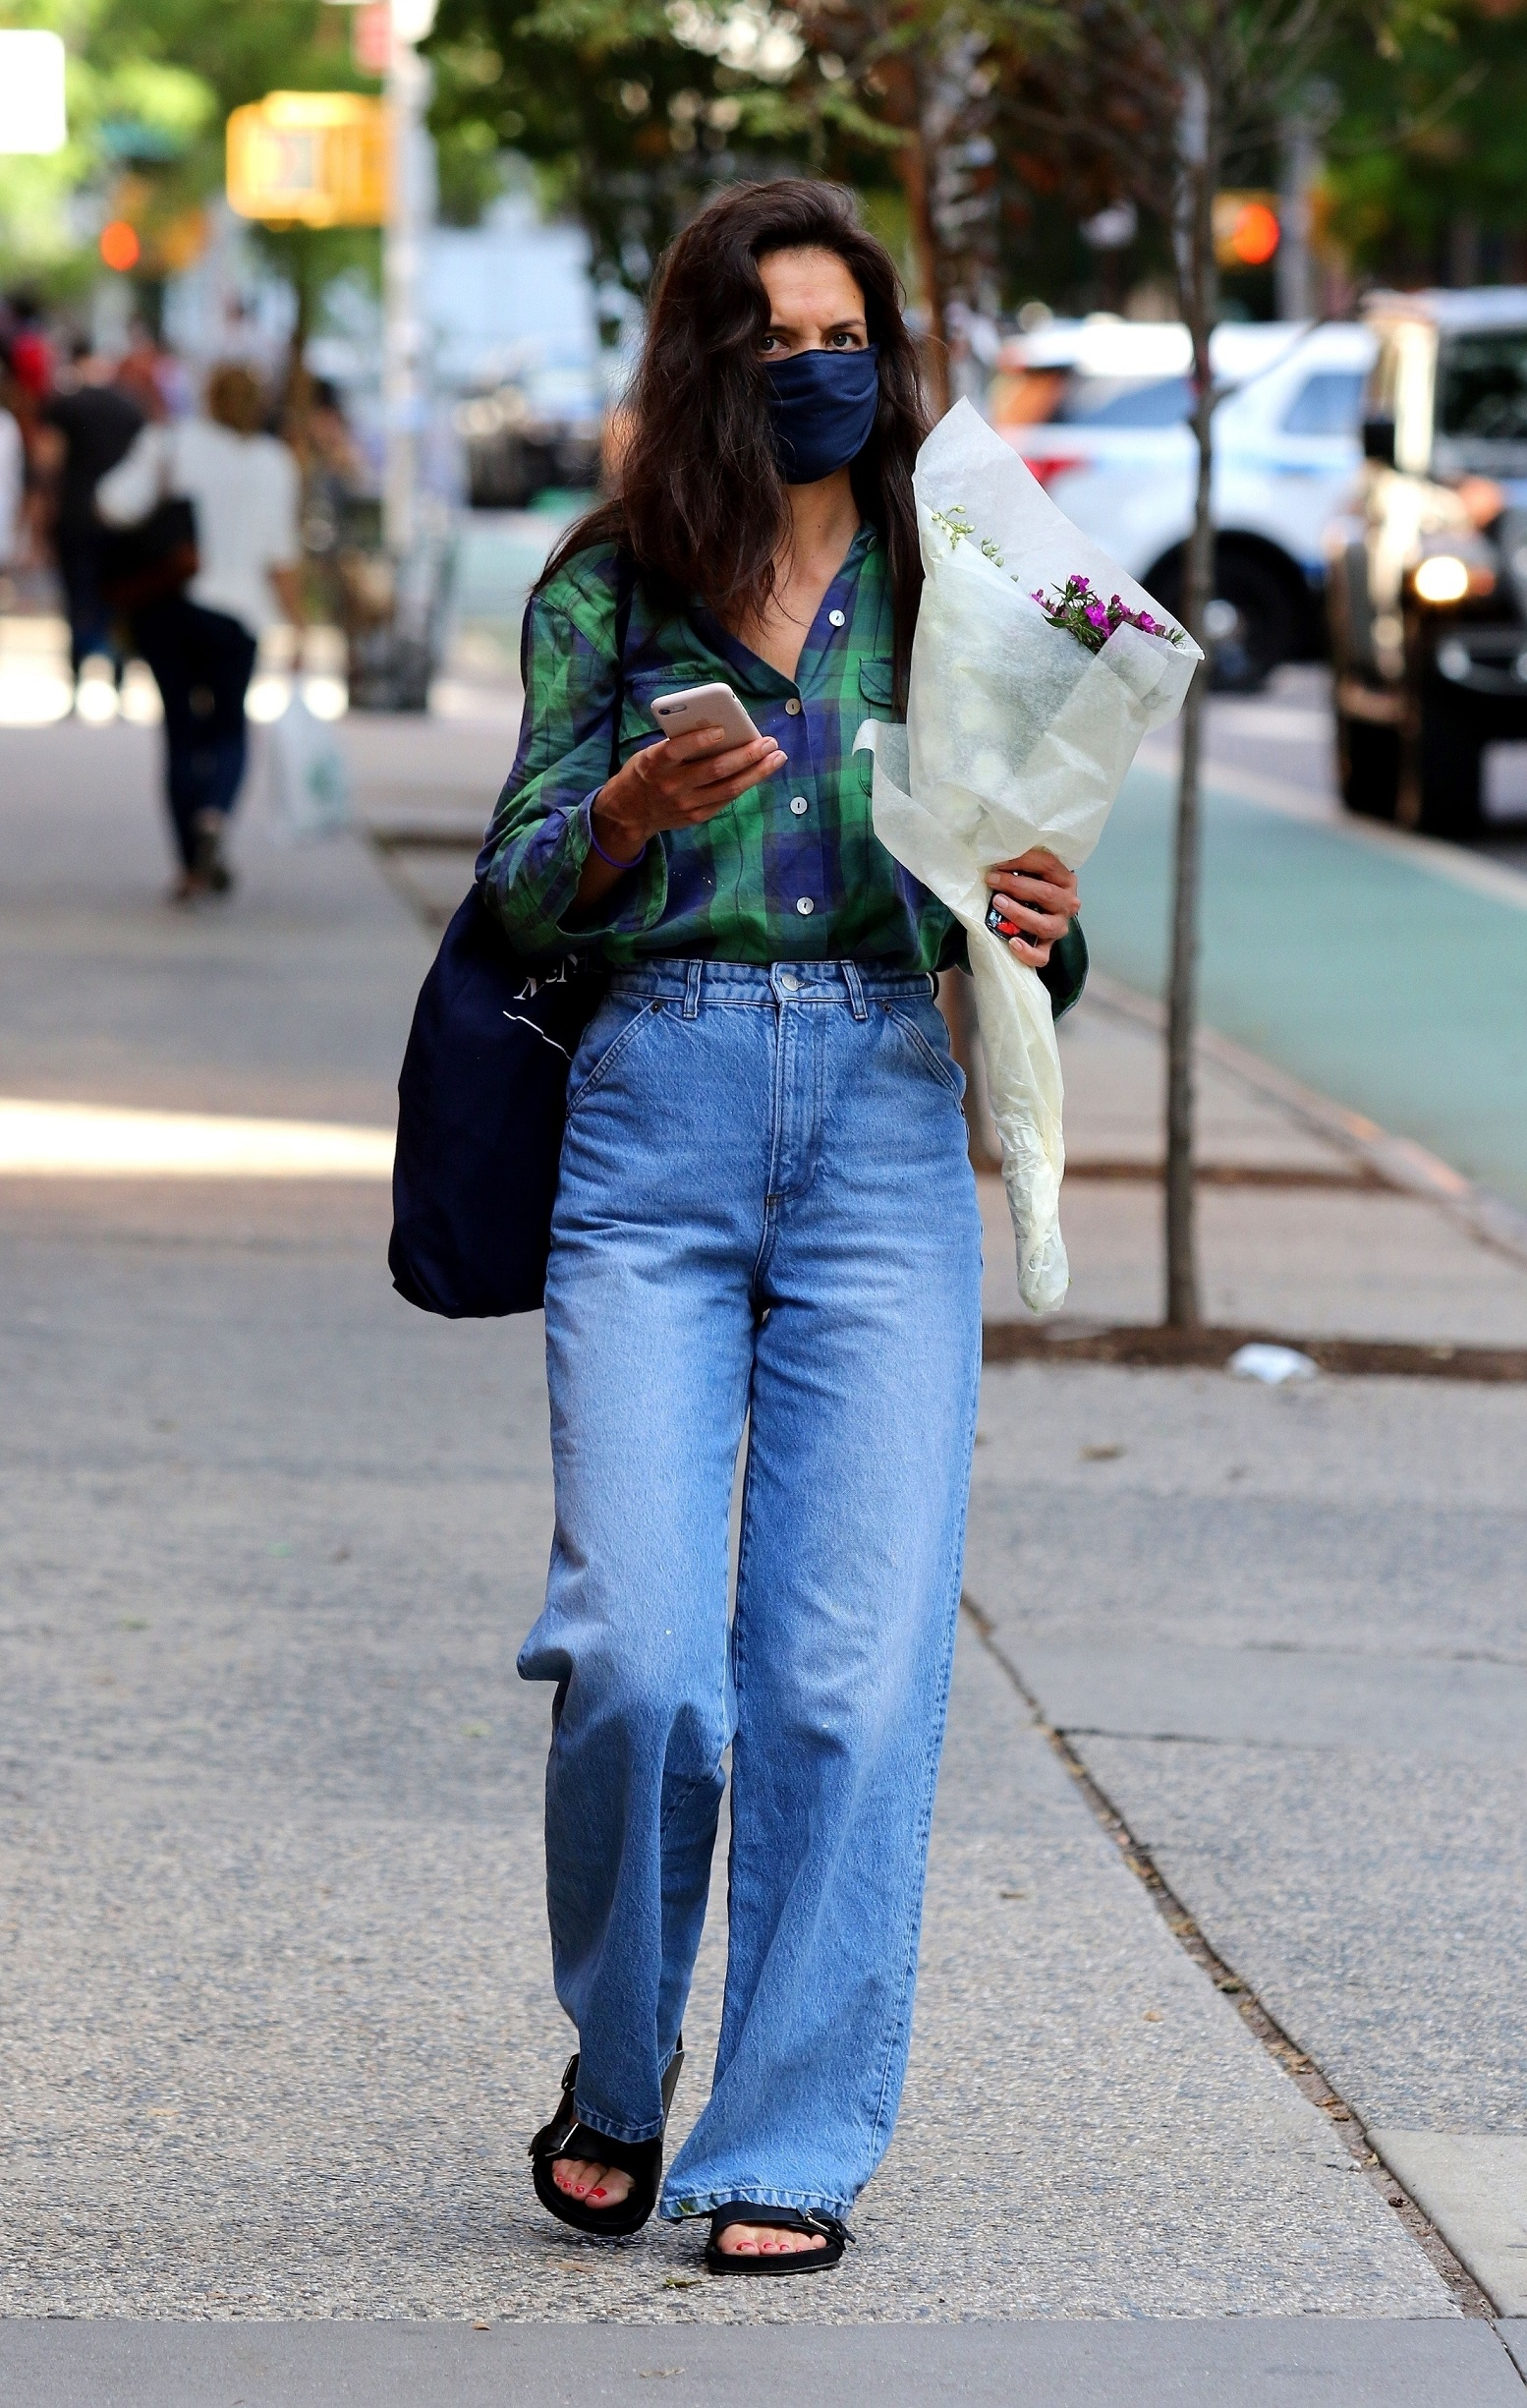 New York City, NY  - Katie Holmes is seen carrying a bouquet of flowers and later shops at a Downtown Manhattan supermarket.  BACKGRID USA 18 AUGUST 2020,Image: 553578163, License: Rights-managed, Restrictions: , Model Release: no, Credit line: BrosNYC / BACKGRID / Backgrid USA / Profimedia